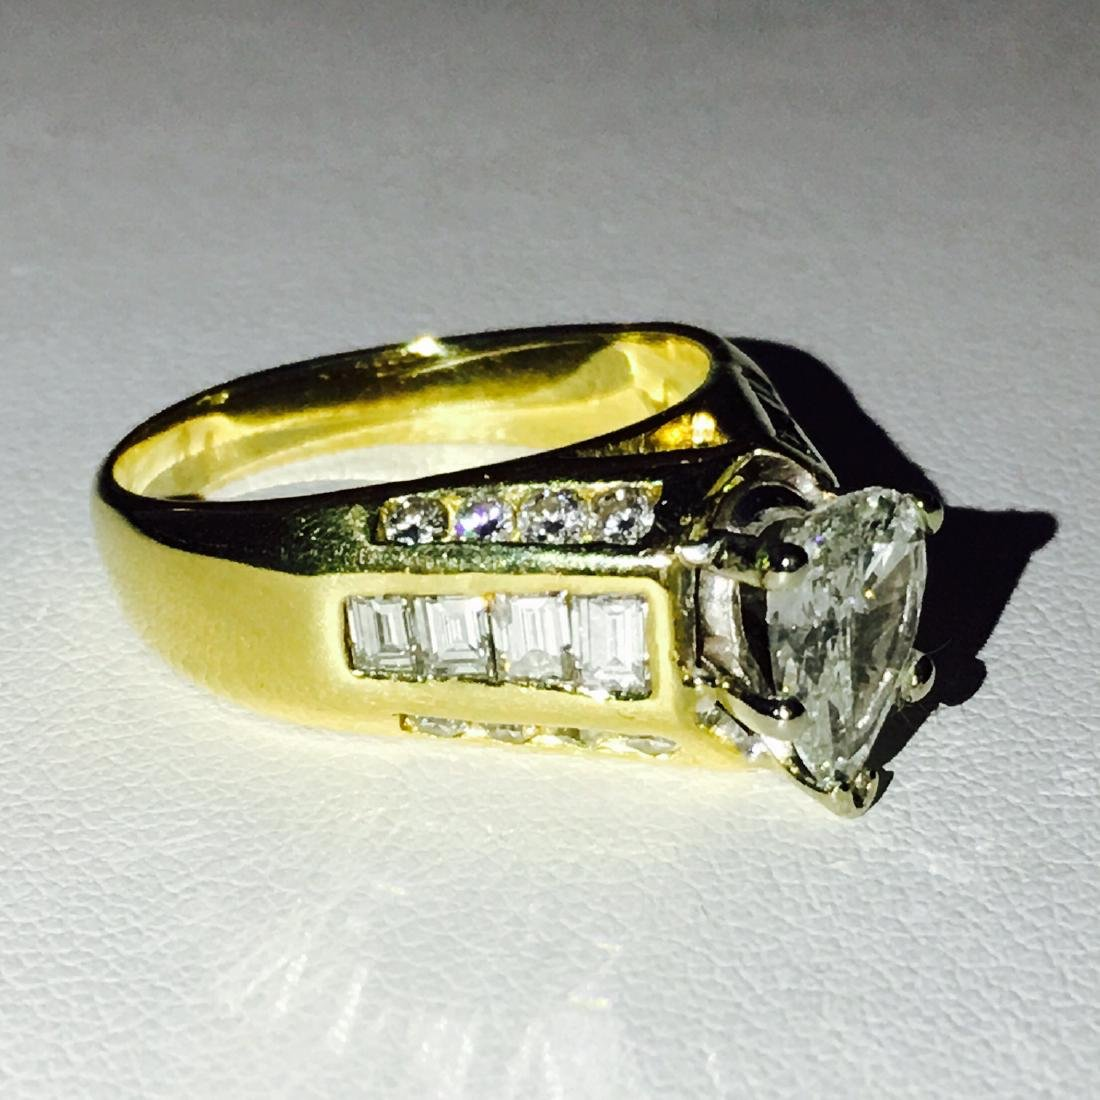 18K Yellow Gold and Diamond Engagement Ring (GIA) - 3